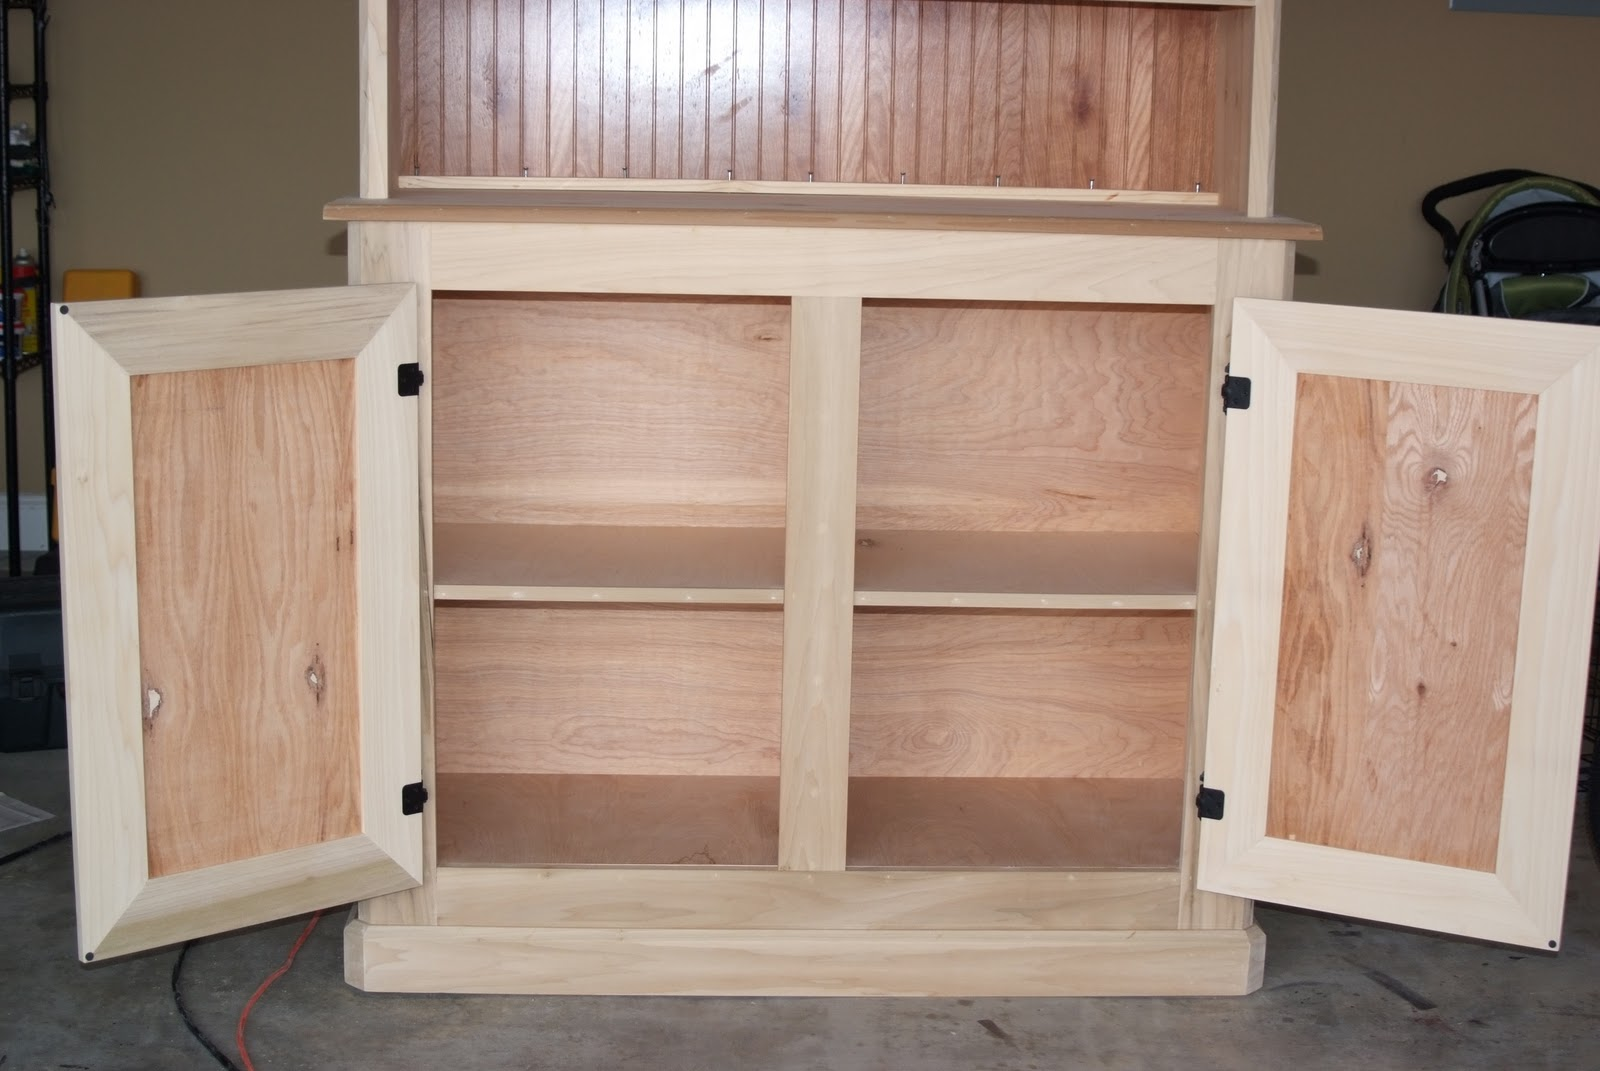 Kiwi Wood Werks & Designs: & Designs (Craft Storage ...